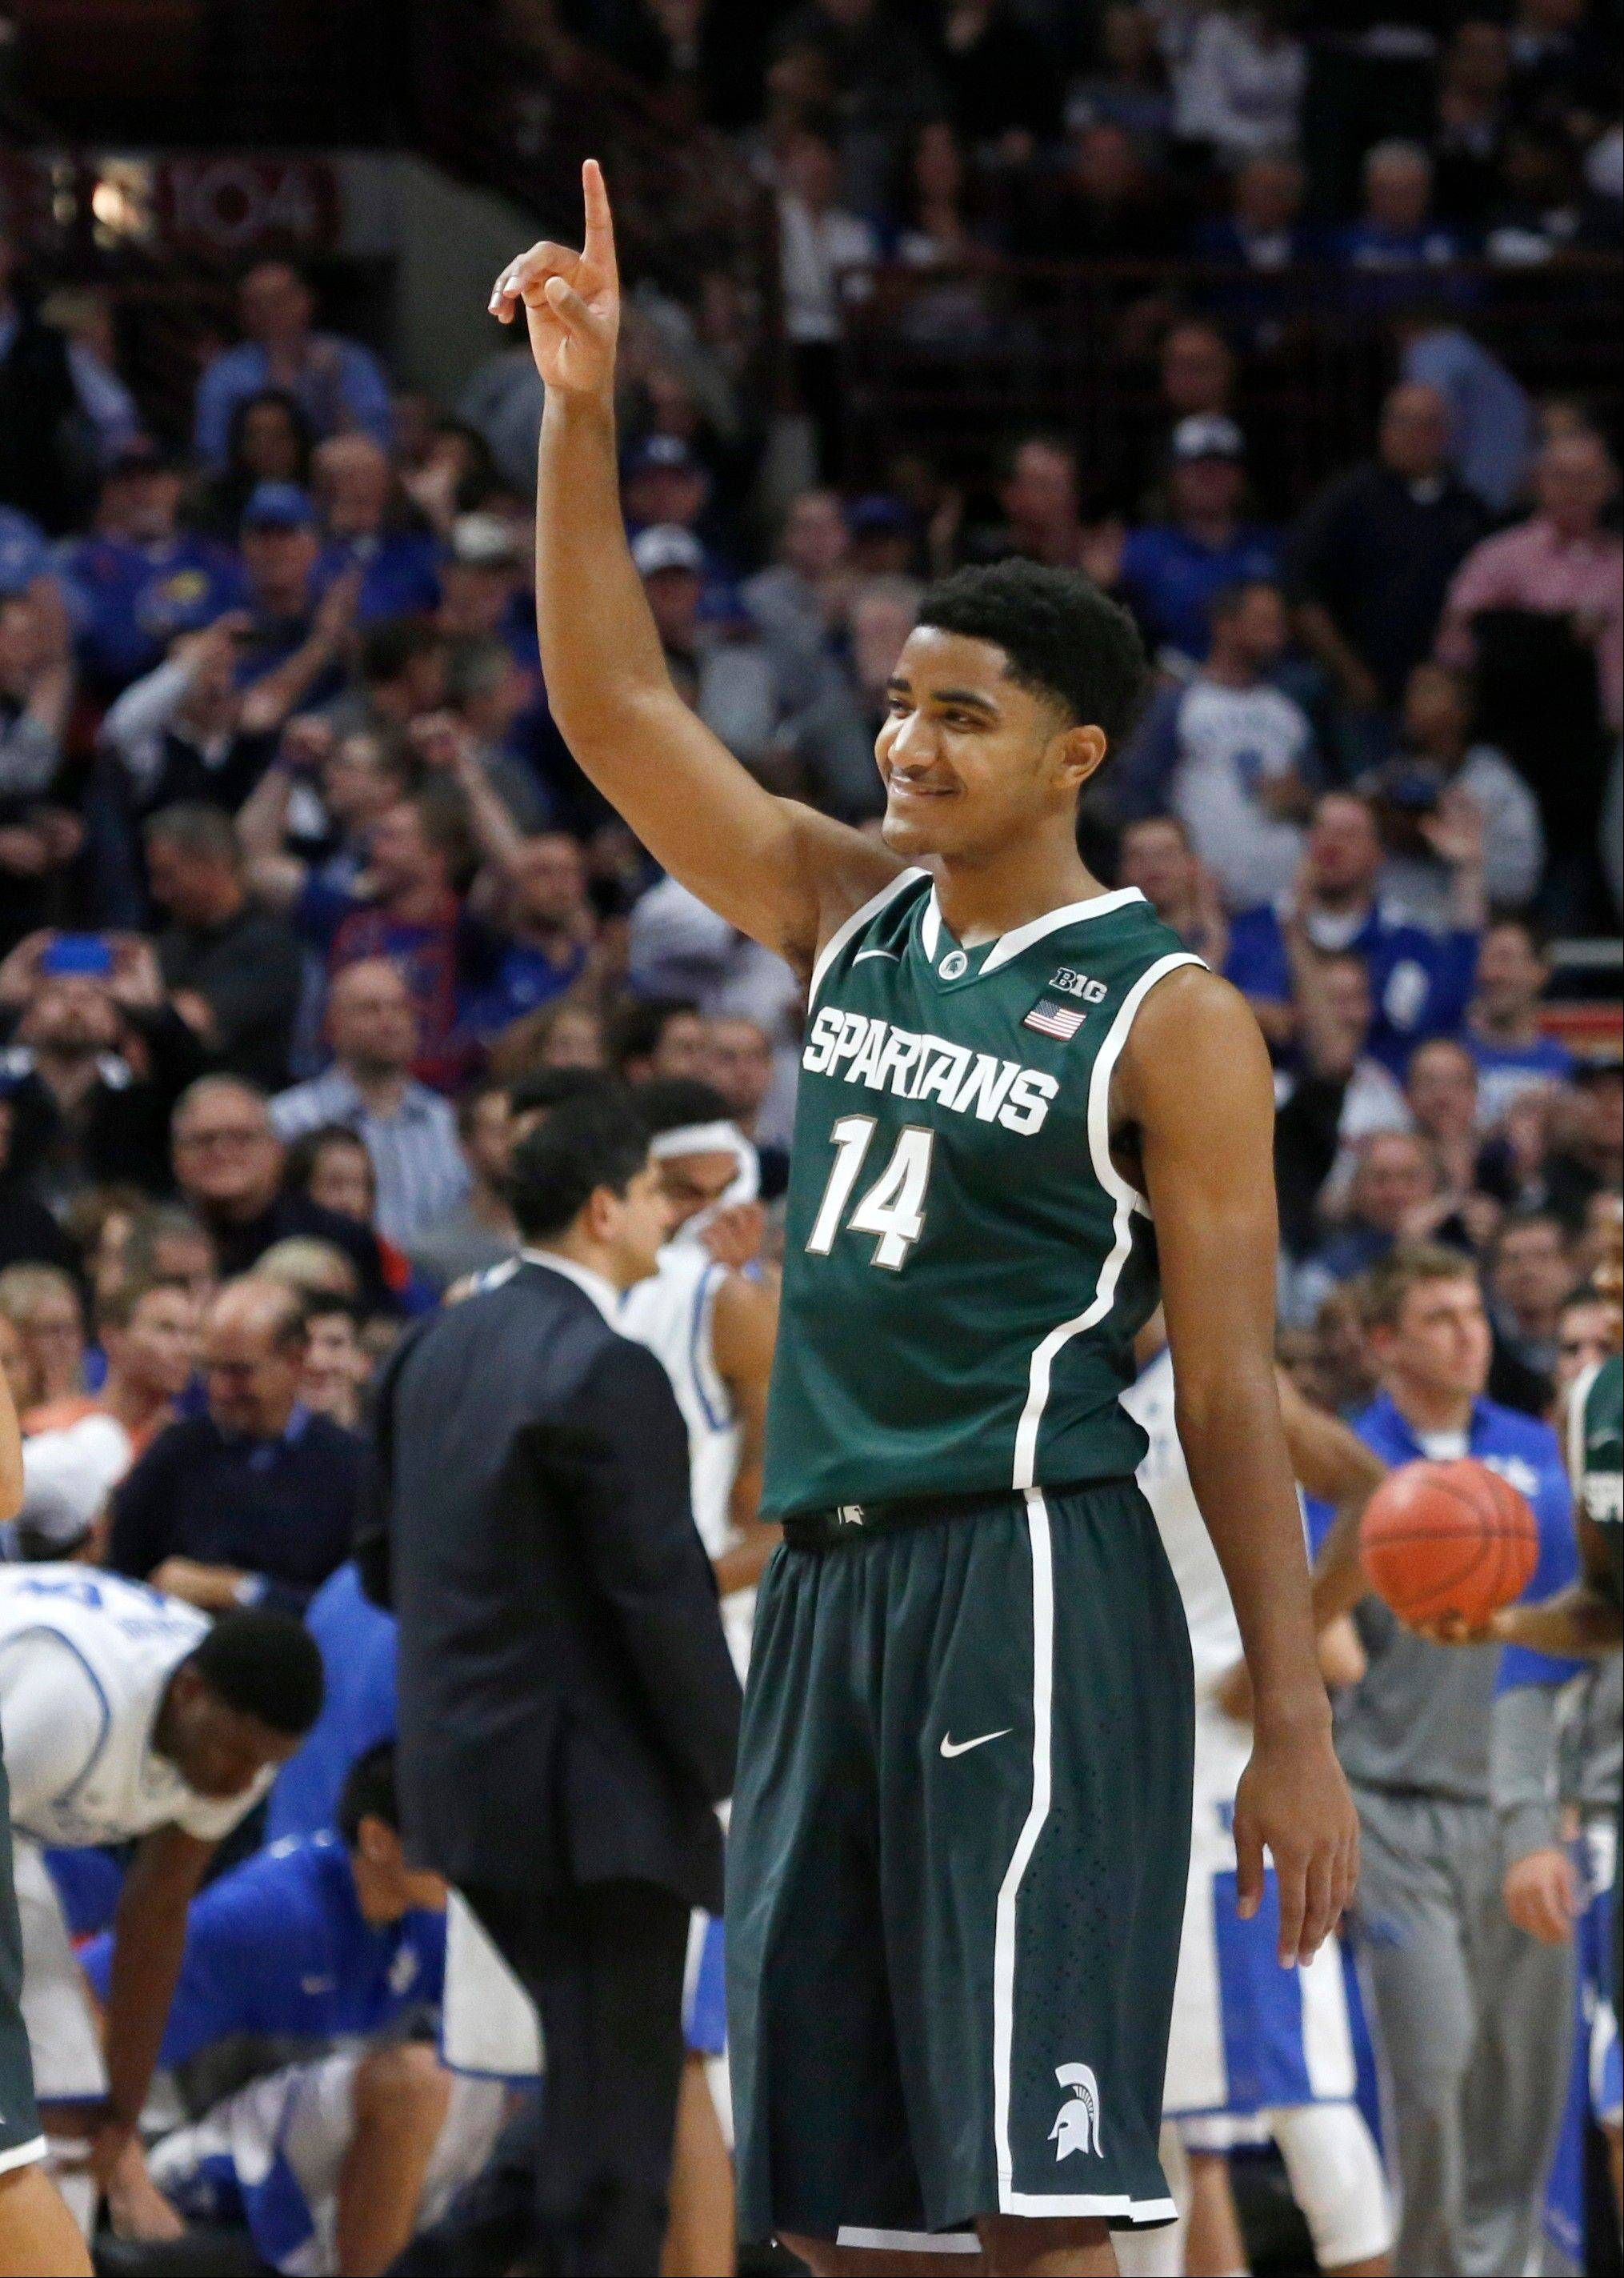 Michigan State guard Gary Harris (14) celebrates the Spartans' 78-74 win over Kentucky in an NCAA college basketball game Tuesday, Nov. 12, 2013, in Chicago.